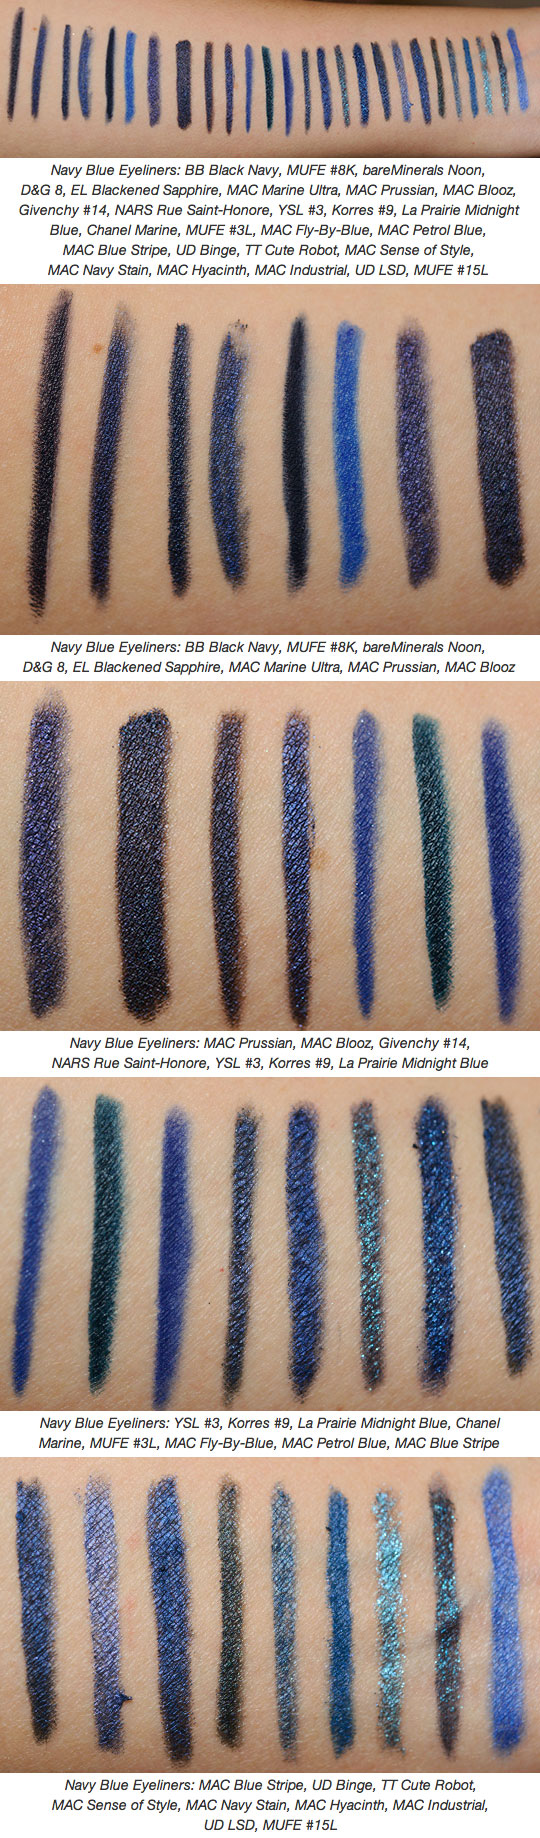 navy blue eyeliners swatches dupes and comparisons pinterest maquillaje. Black Bedroom Furniture Sets. Home Design Ideas